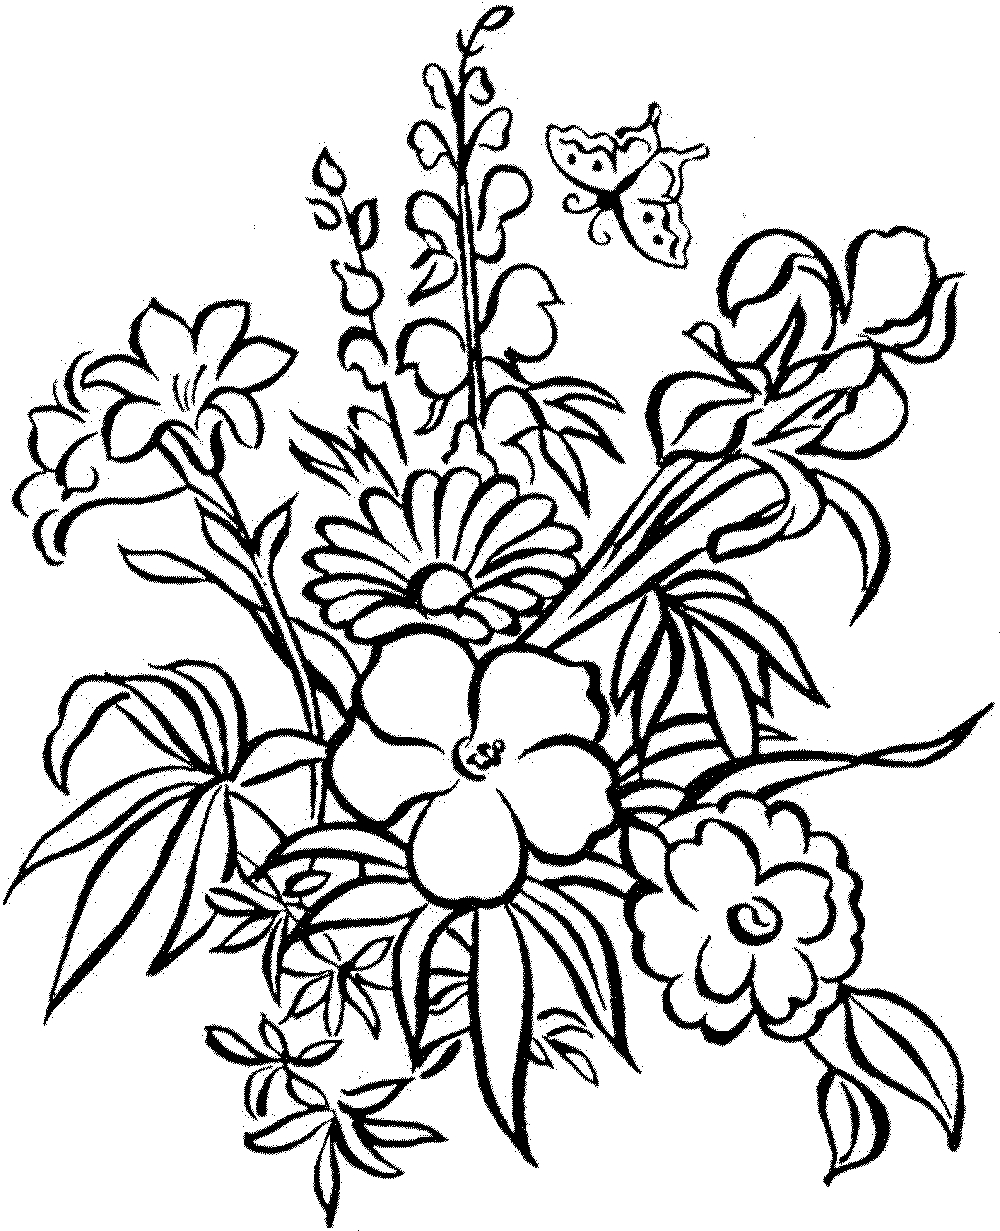 colouring page of flowers free download to print beautiful spring flower coloring colouring of page flowers